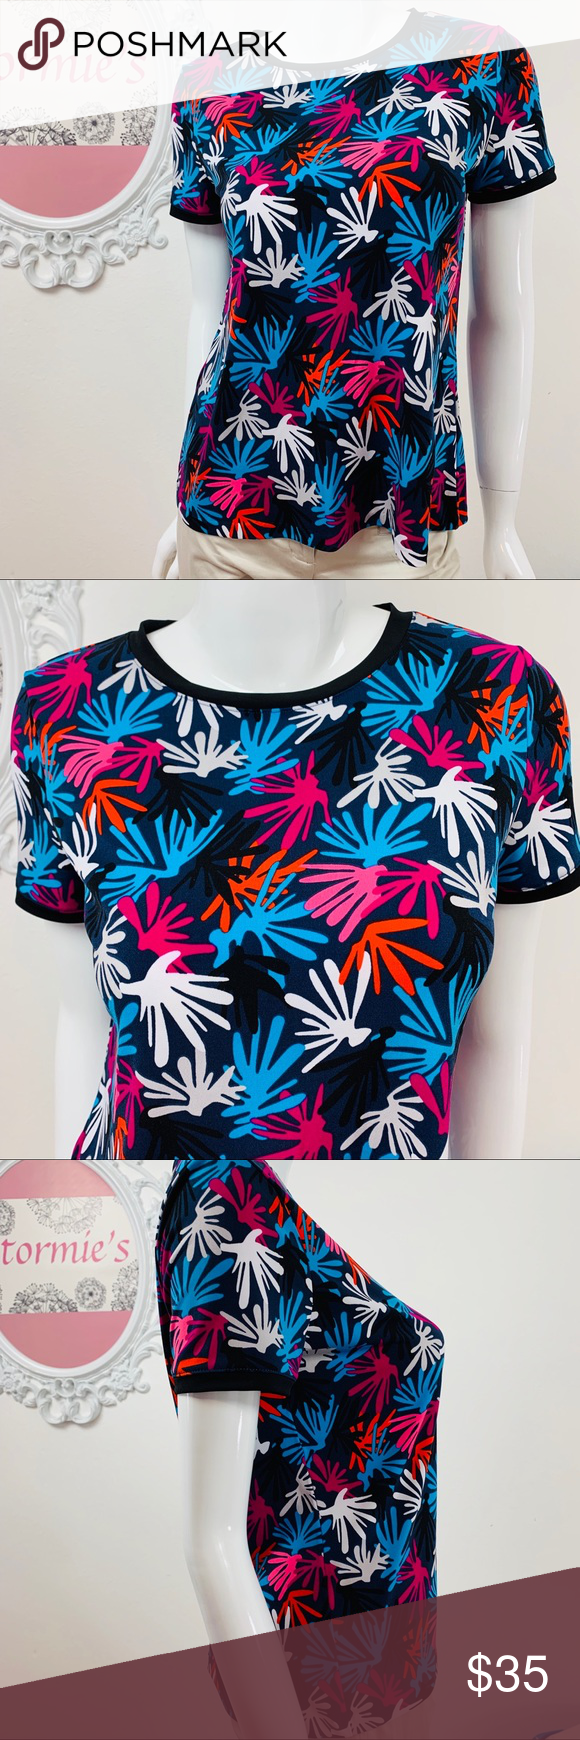 Anne Klein / Black Pink Blue Purple Orange White Anne Klein black with fun pops of color. . Button up back. 94% polyester 6% Spandex gives a little extra stretch.   size M Bust 19in. Length 25in.  ➡️Bundle 2 or More items for a Extra Discount!!!! ➡️I am open to all Reasonable Offers!!! 👍So Bundle your Items and Send me a Offer 👍 #0317 Anne Klein Tops Blouses